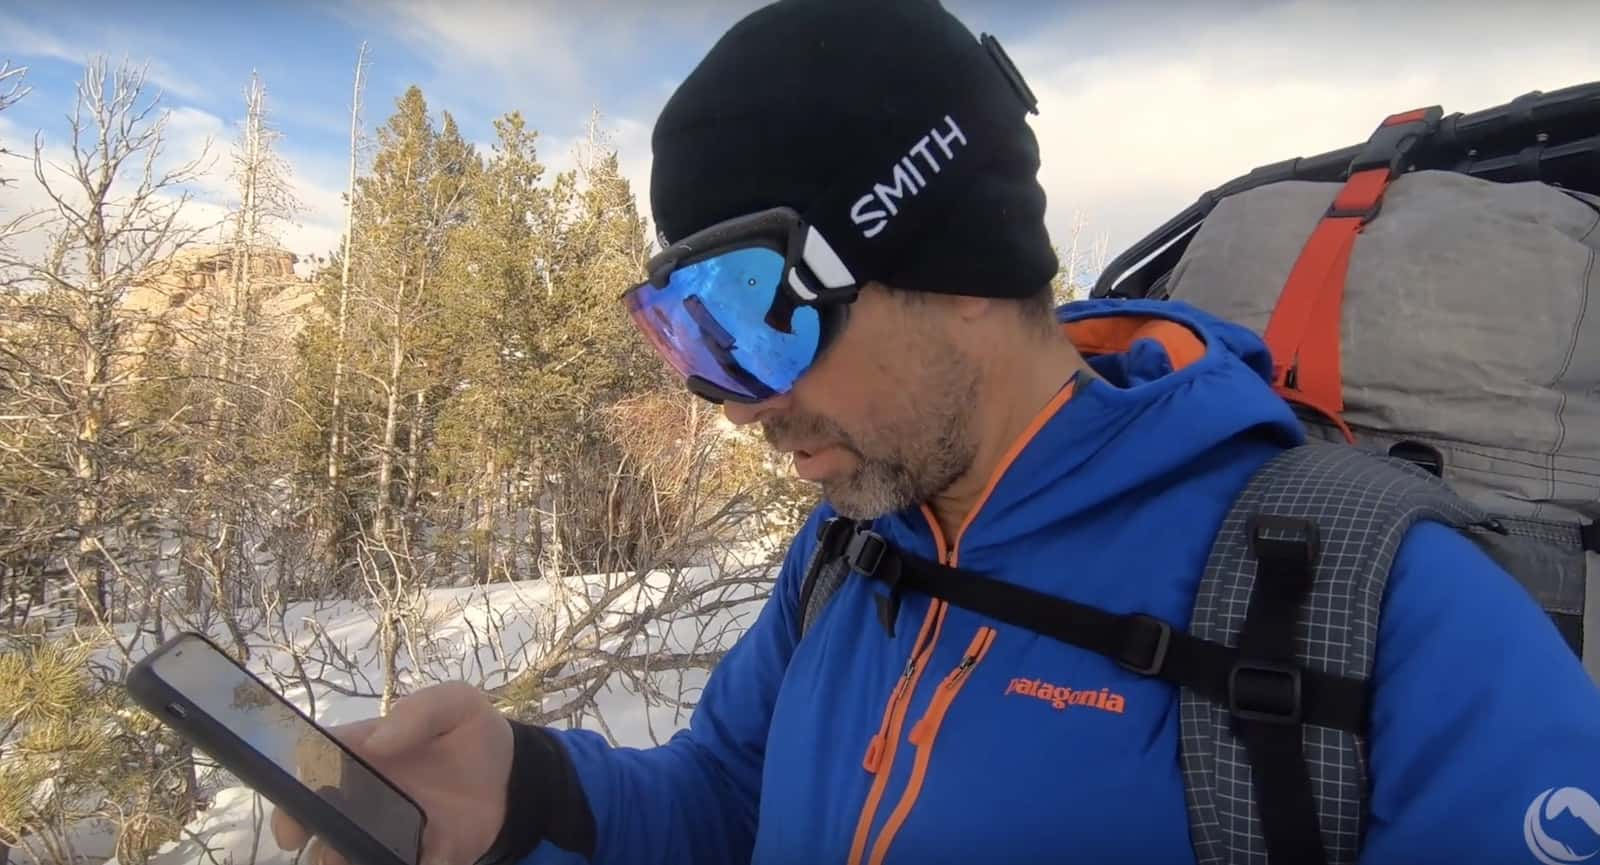 smith ios goggles backpacking light ryan jordan